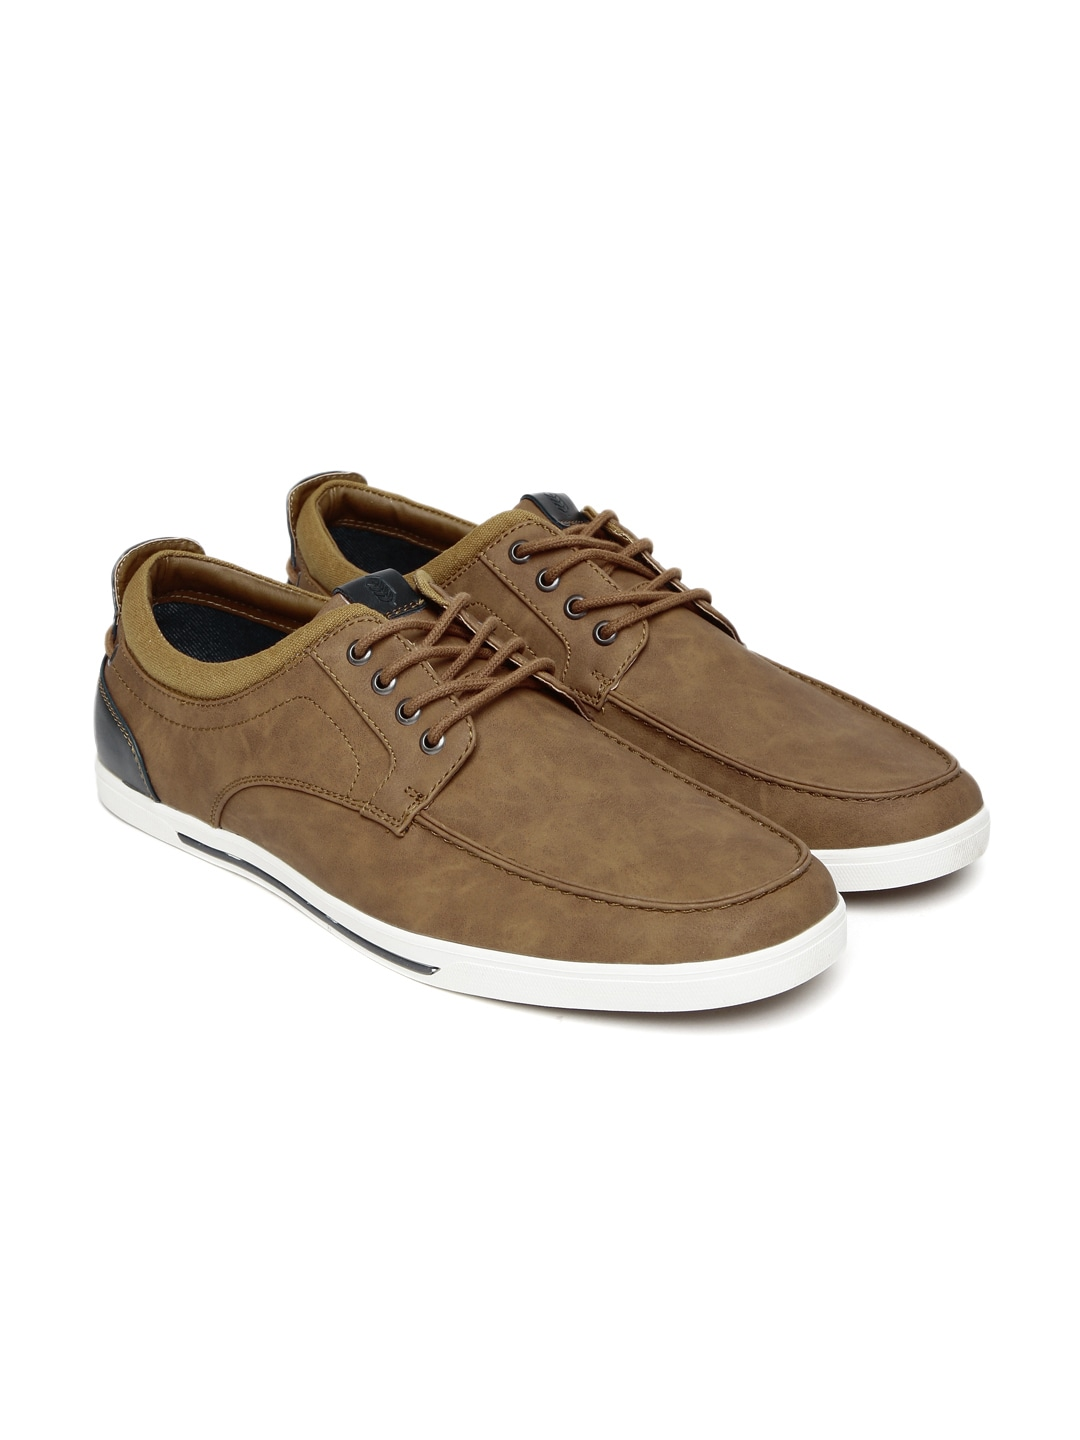 213fb9fa004d Call It Spring Casual Shoes - Buy Call It Spring Casual Shoes online in  India